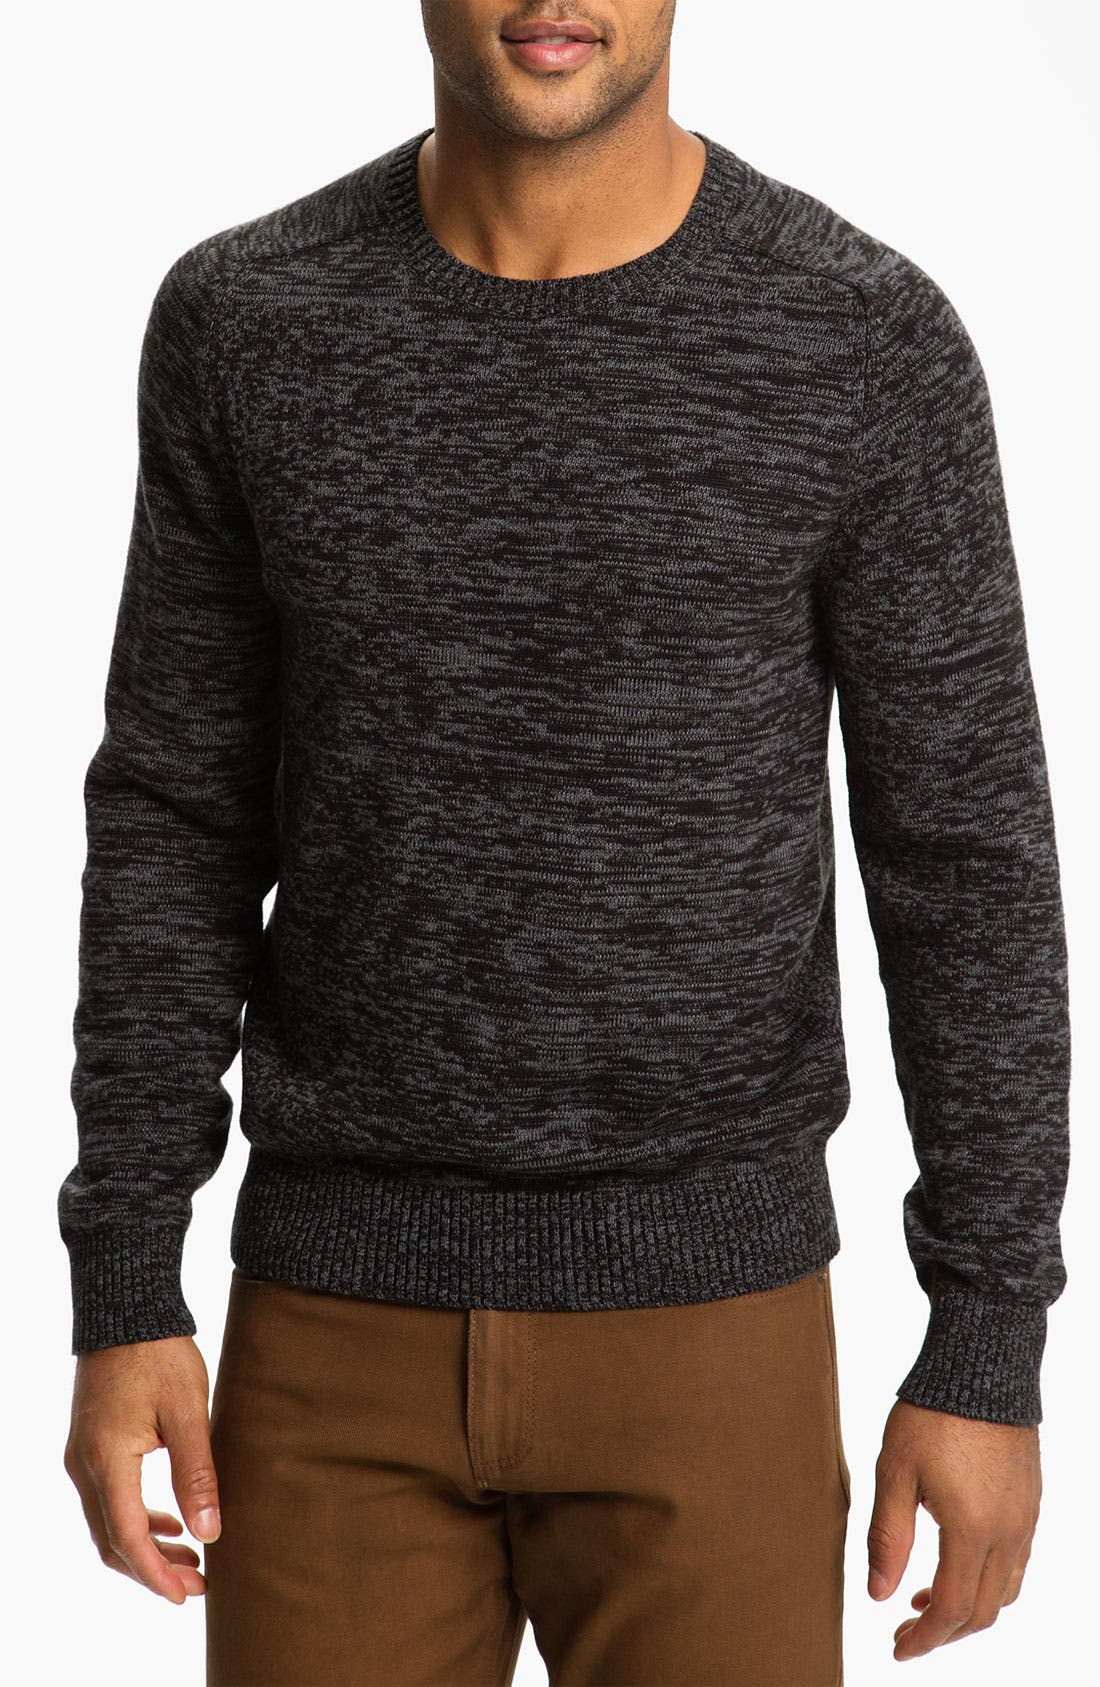 Main Image - Calibrate 'Witkin' Cotton & Cashmere Crewneck Sweater